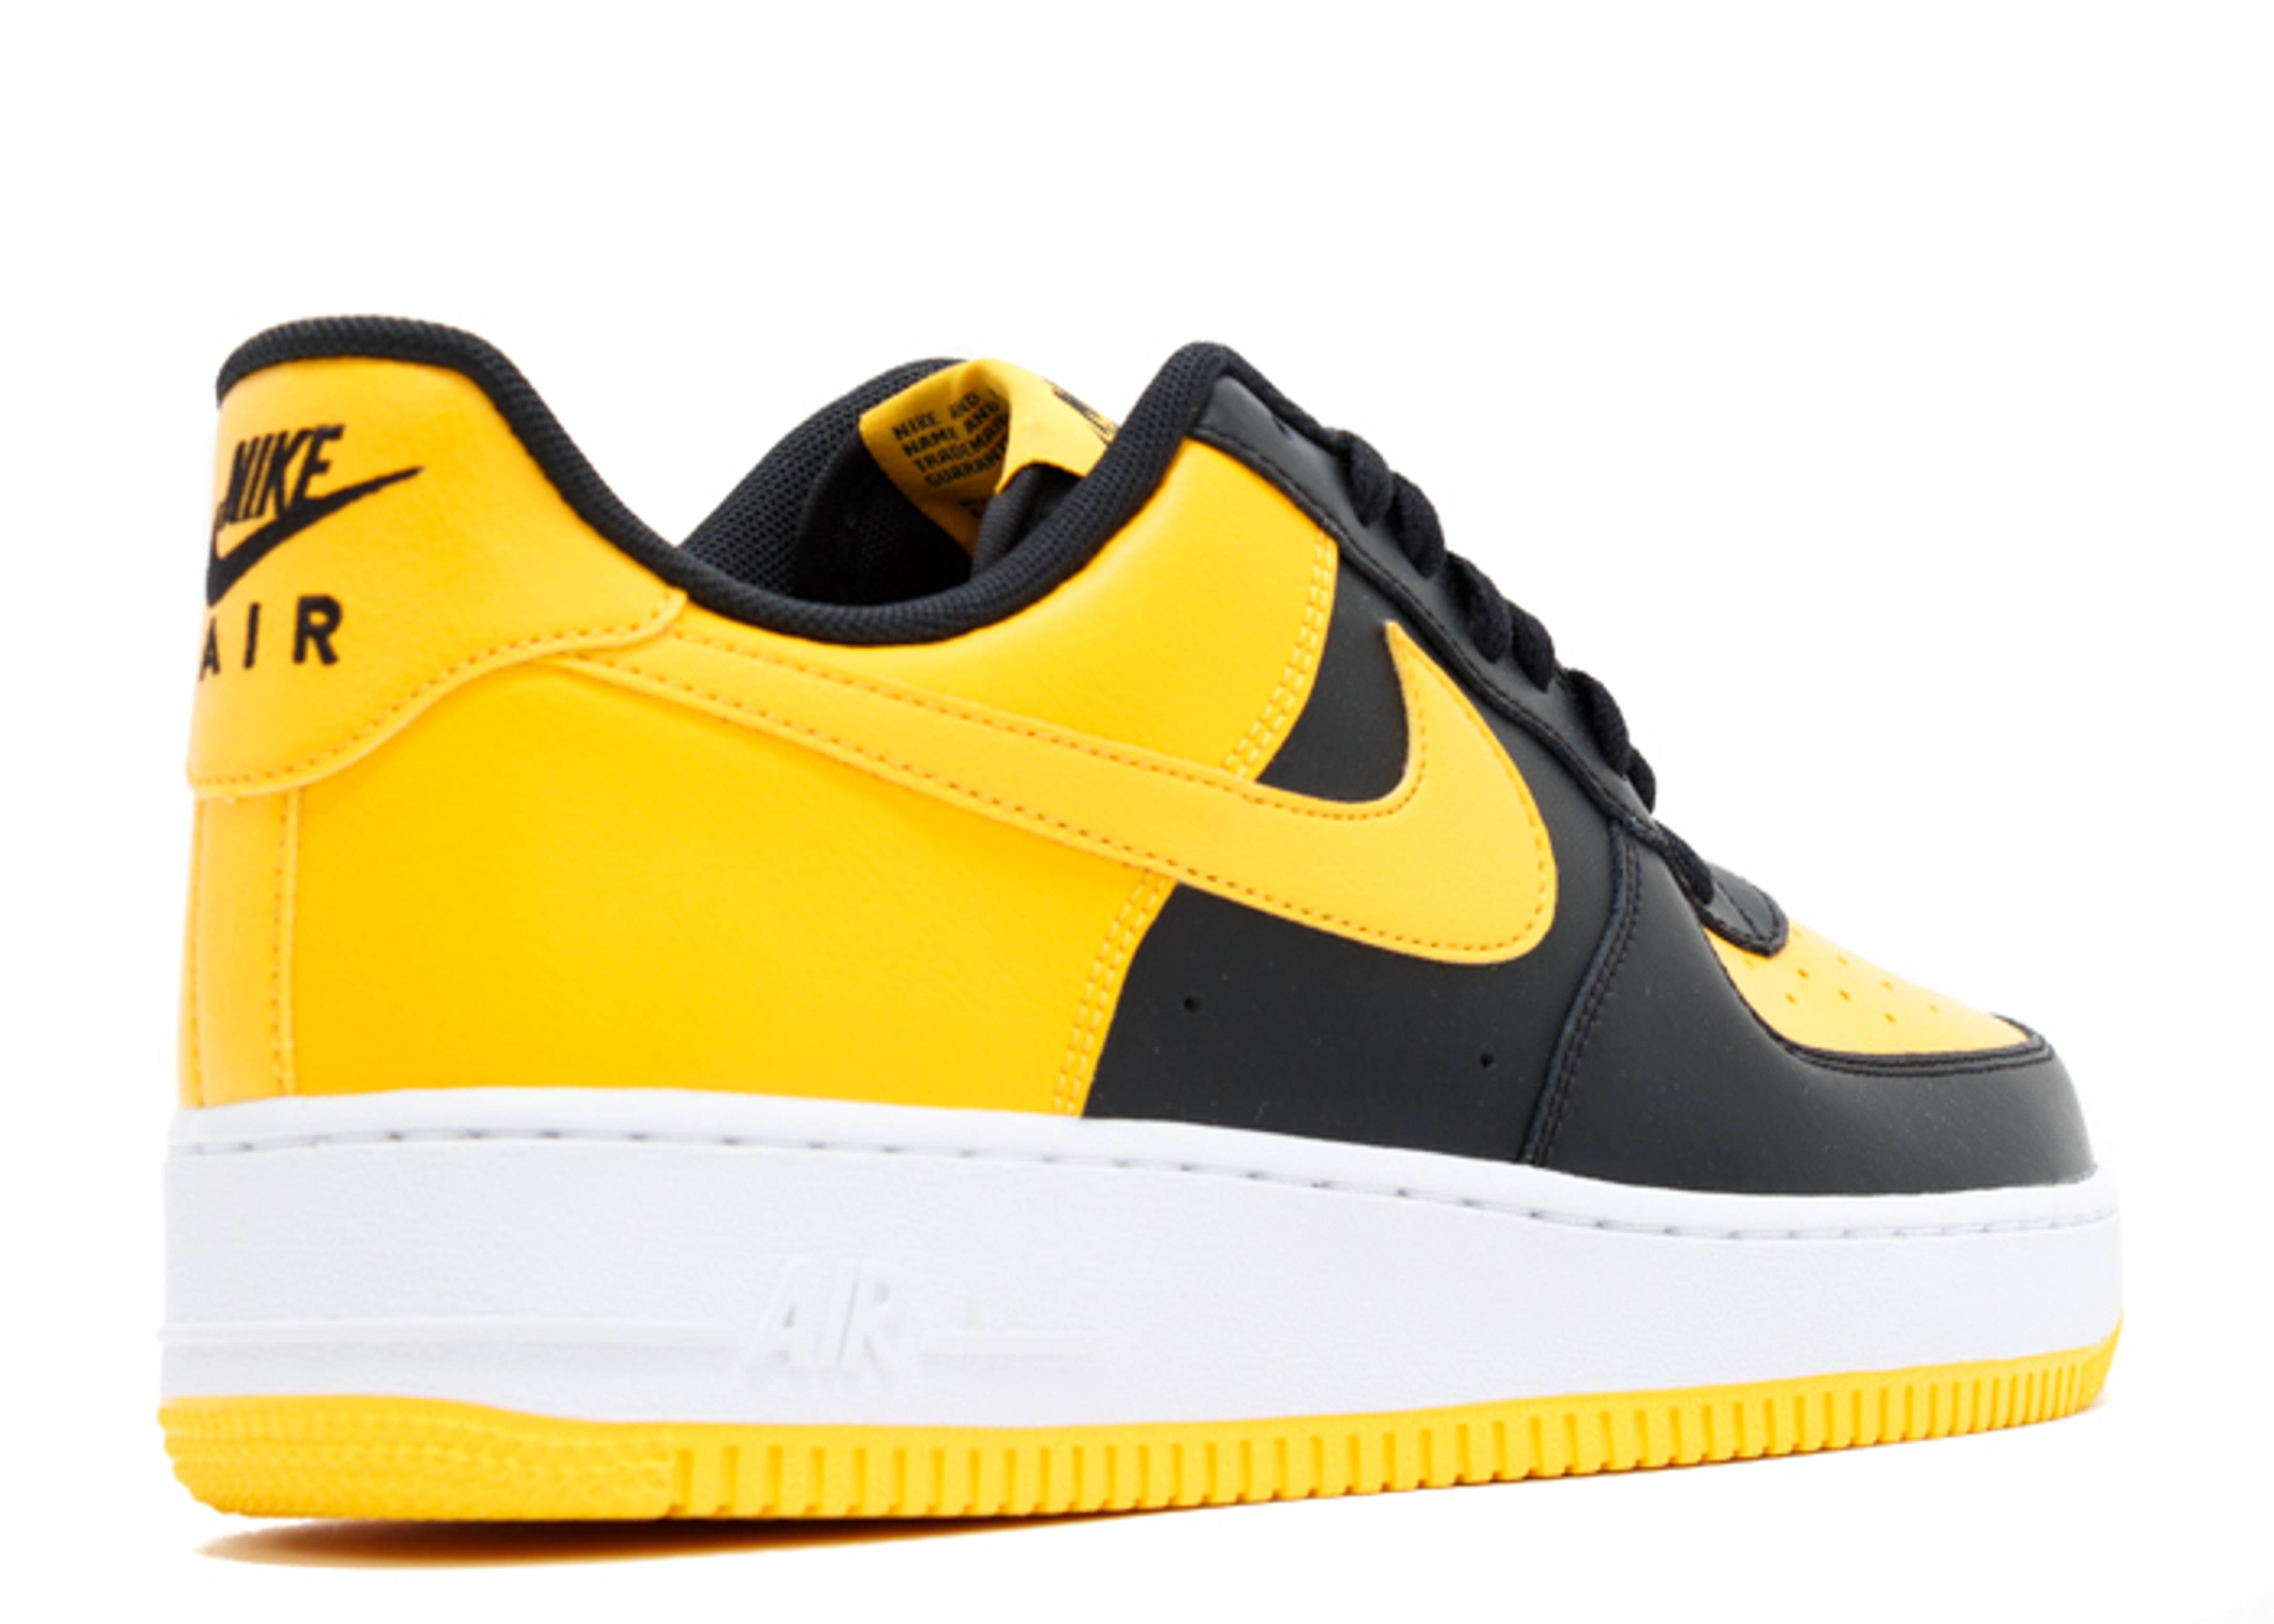 Nike Air Force Cheap Nike Air Force Ones Sale International College